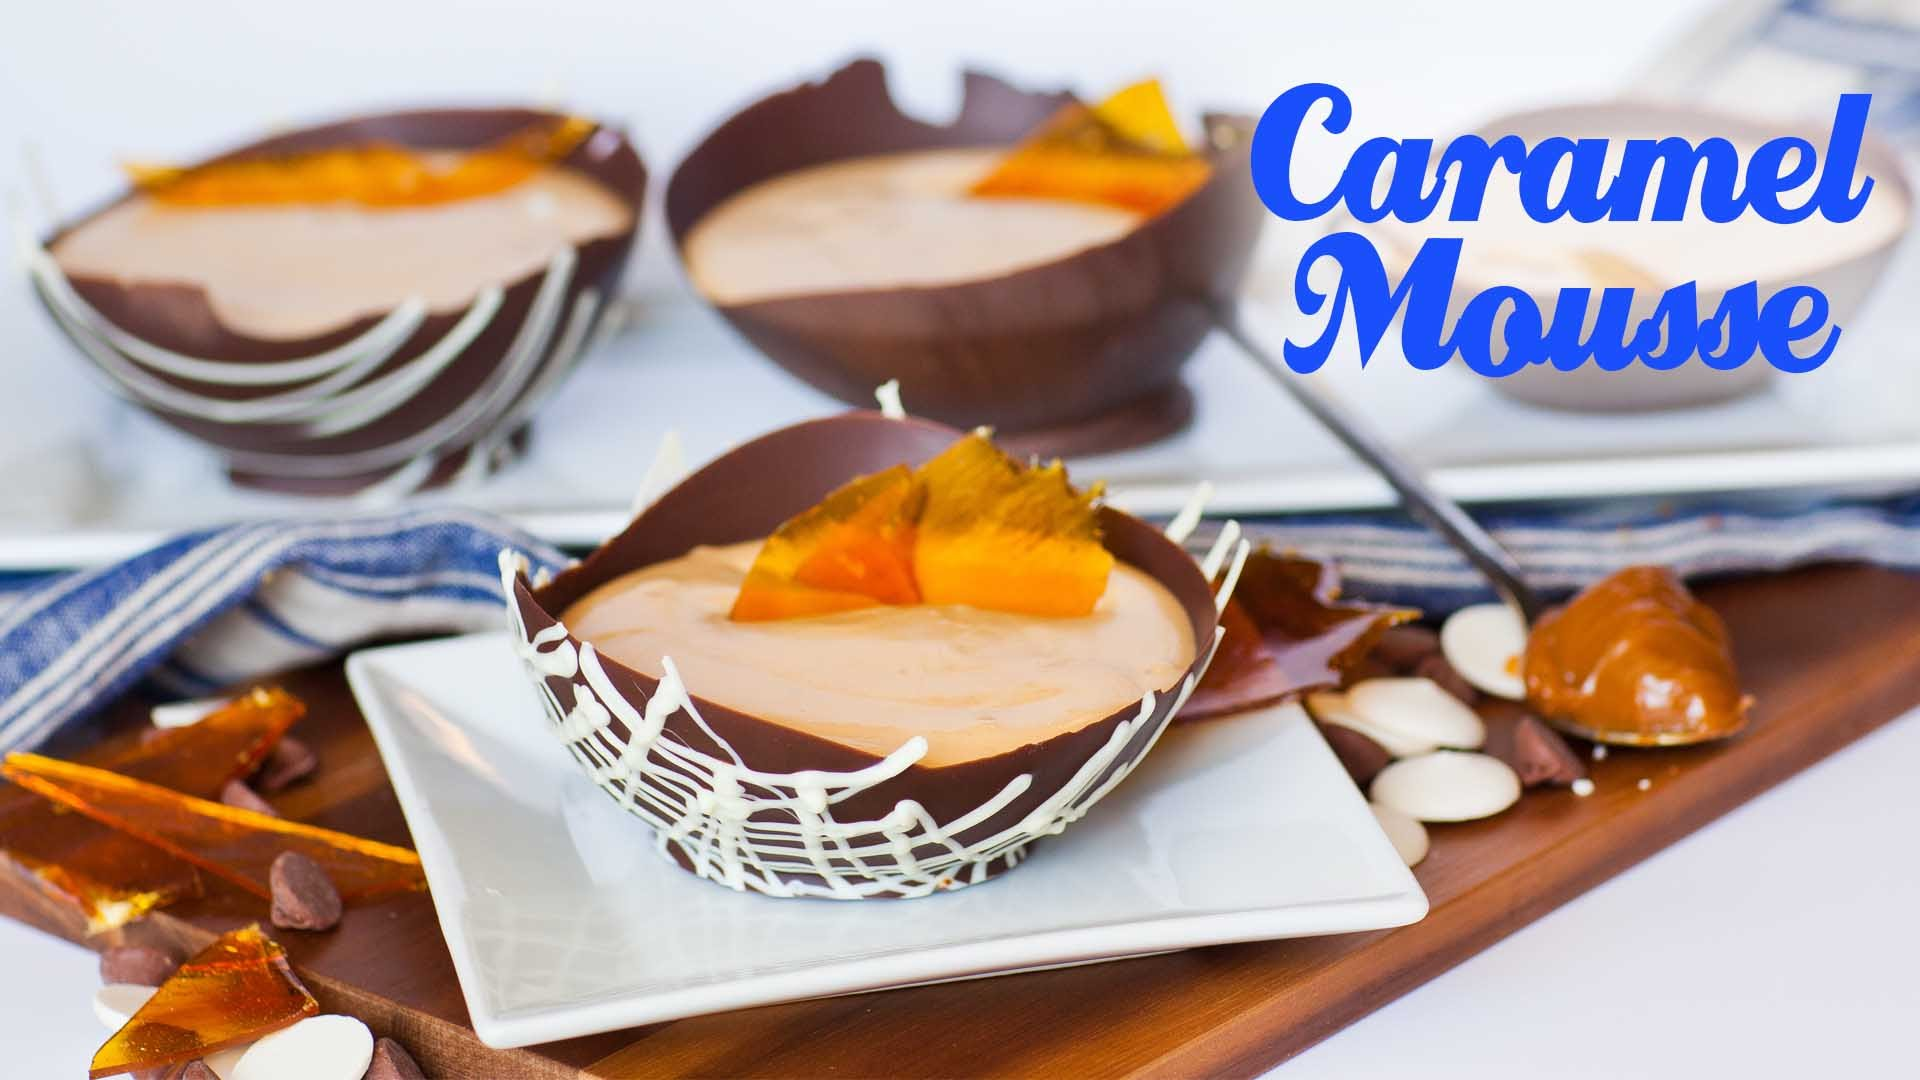 She Pours The Caramel Mousse In One Of The Best Creations Ever!